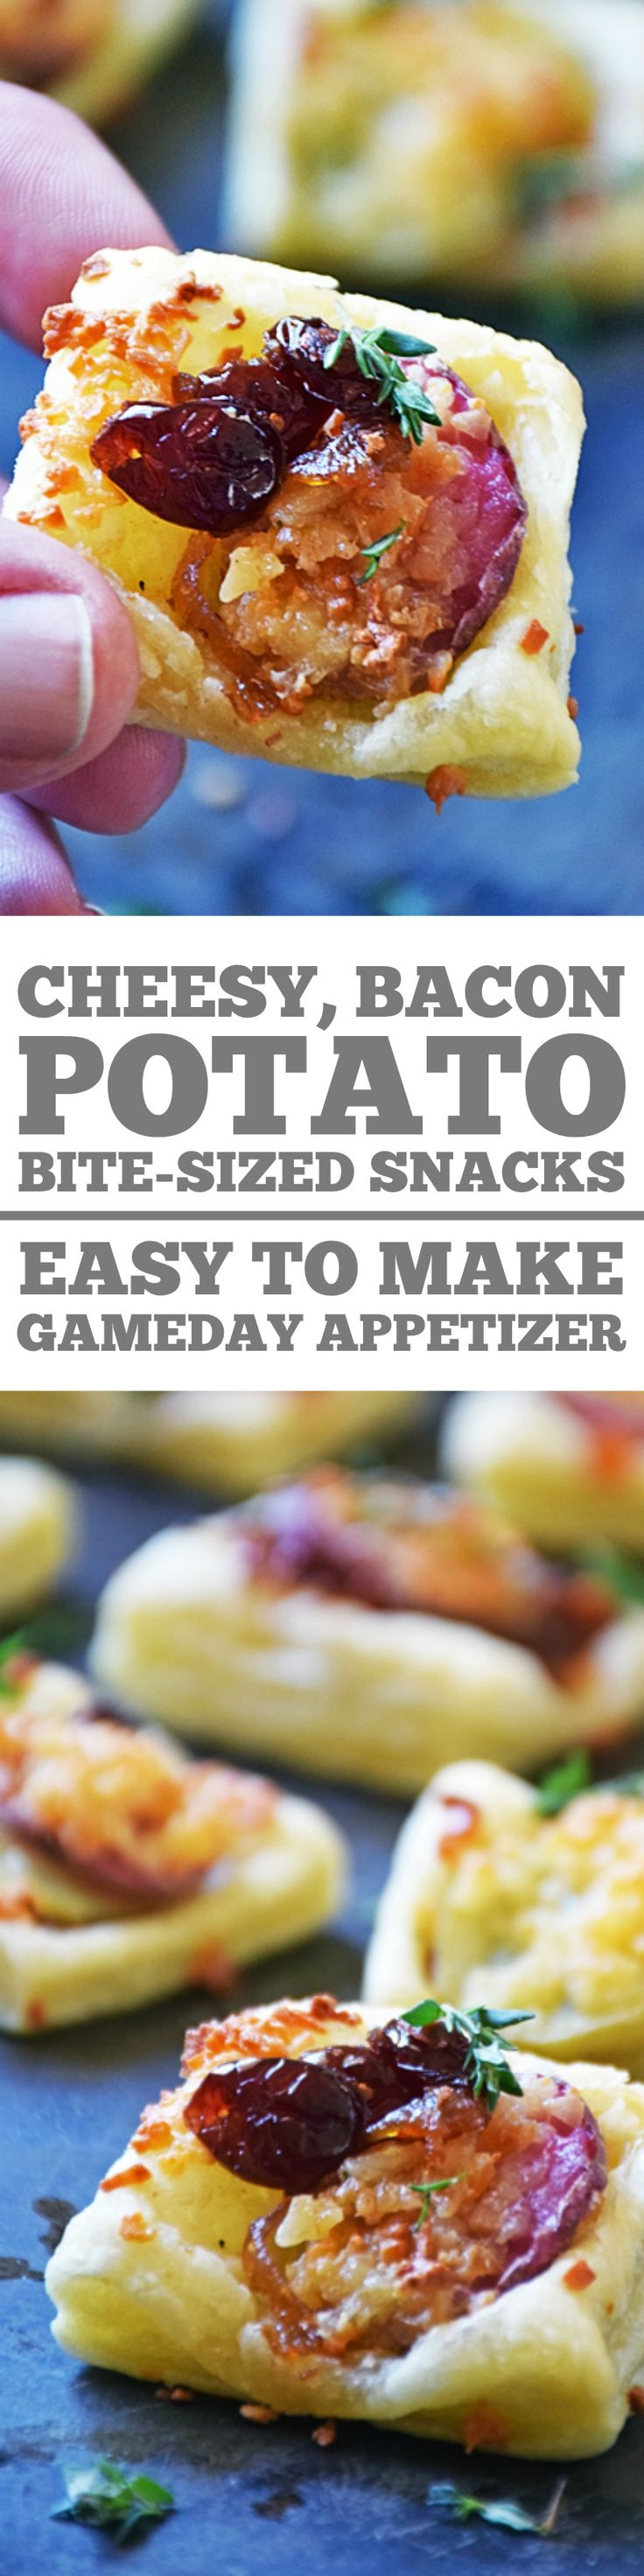 Cheesy Bacon Potato Bite-Sized Snacks are a perfect snack to serve on game day. Each bite is loaded with bacon jam, fingerling potato slices, and Gruyere cheese encased in buttery puff pastry. It's an easy recipe that makes a tasty bite sized snack perfect for popping while watching the big game!